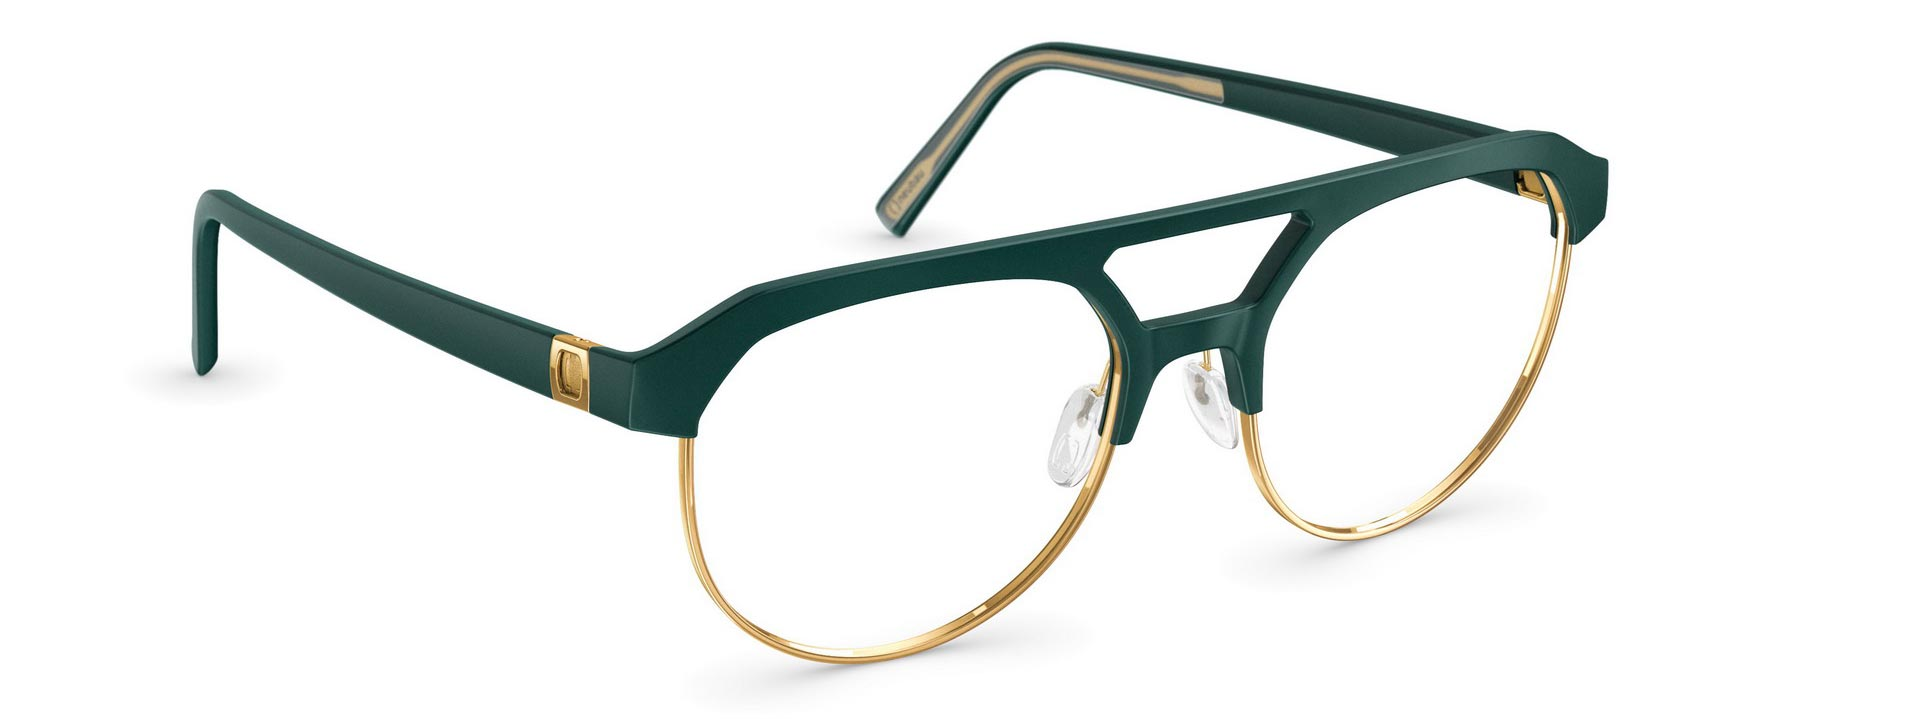 T073 Giovanni 5530 evergreen matte glorious gold Sid